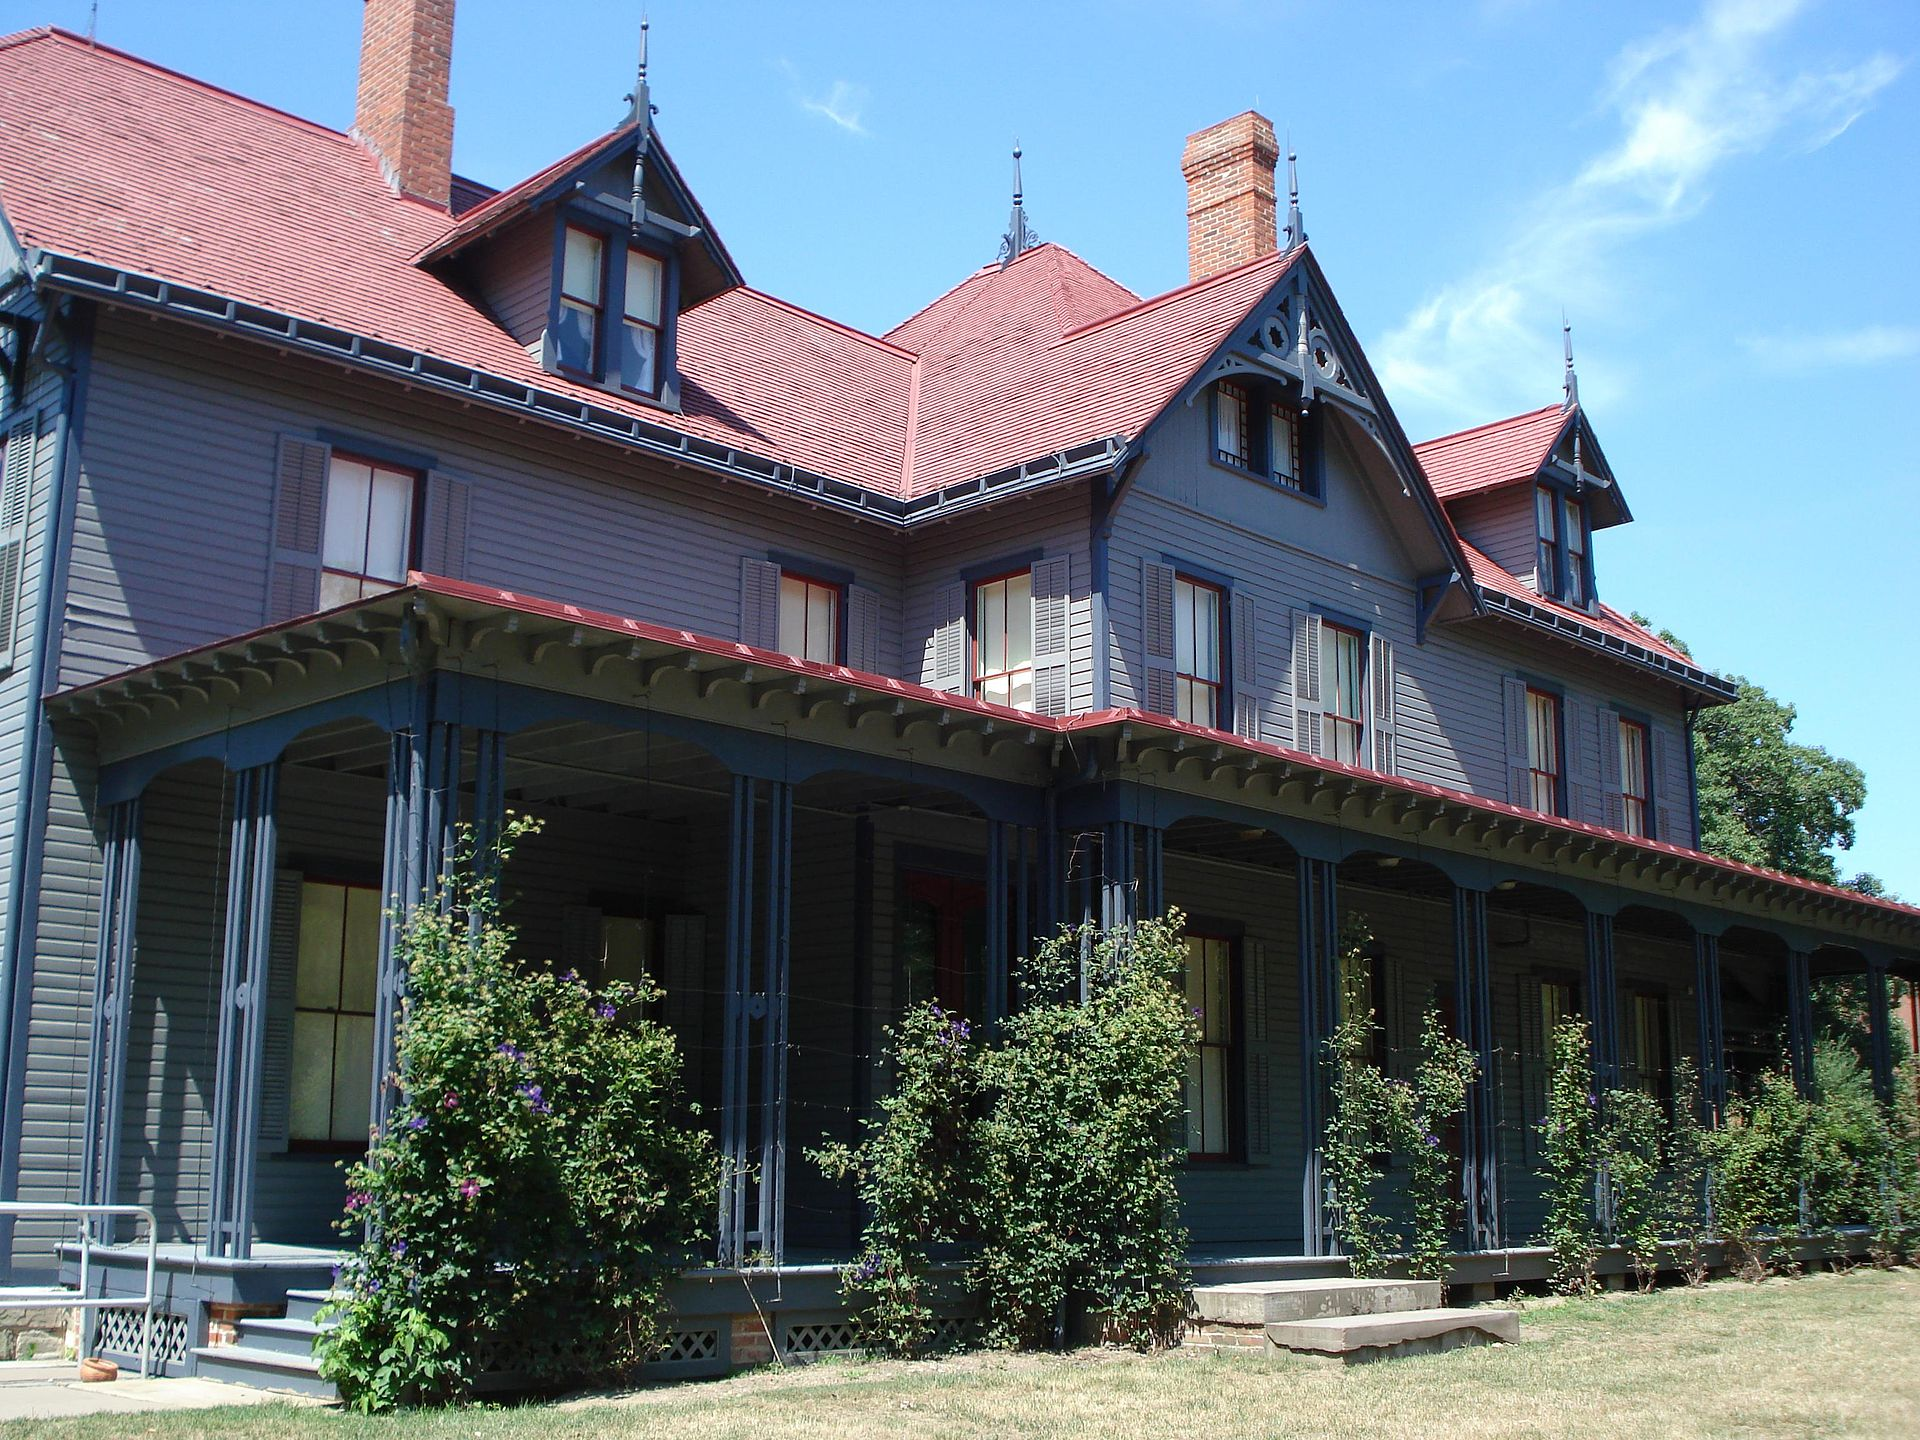 Garfield's Mentor Home as it looks today